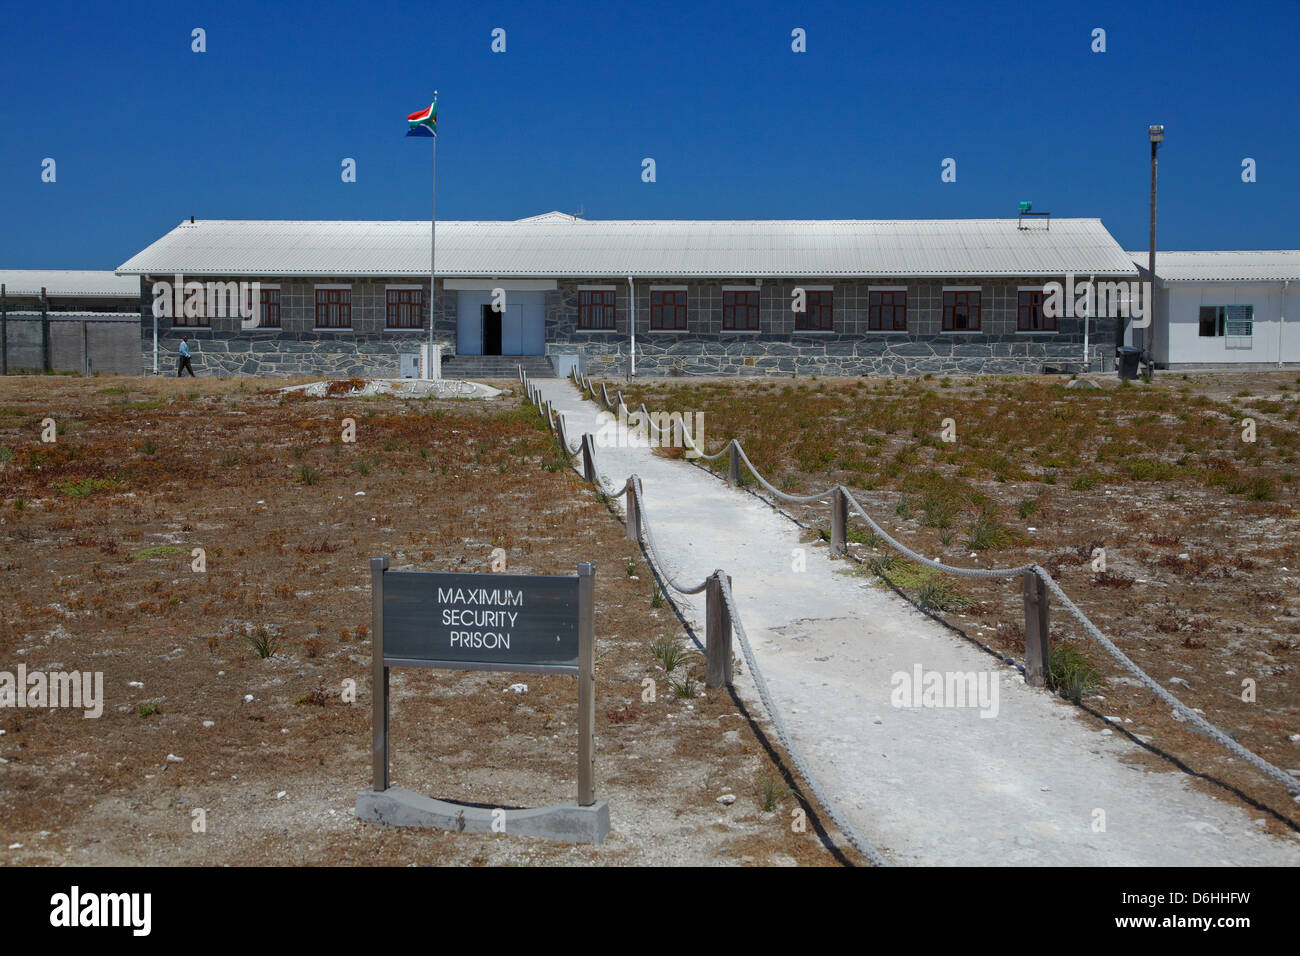 Maximum Security Block, Robben Island Prison, Table Bay, Cape Town, South Africa - Stock Image